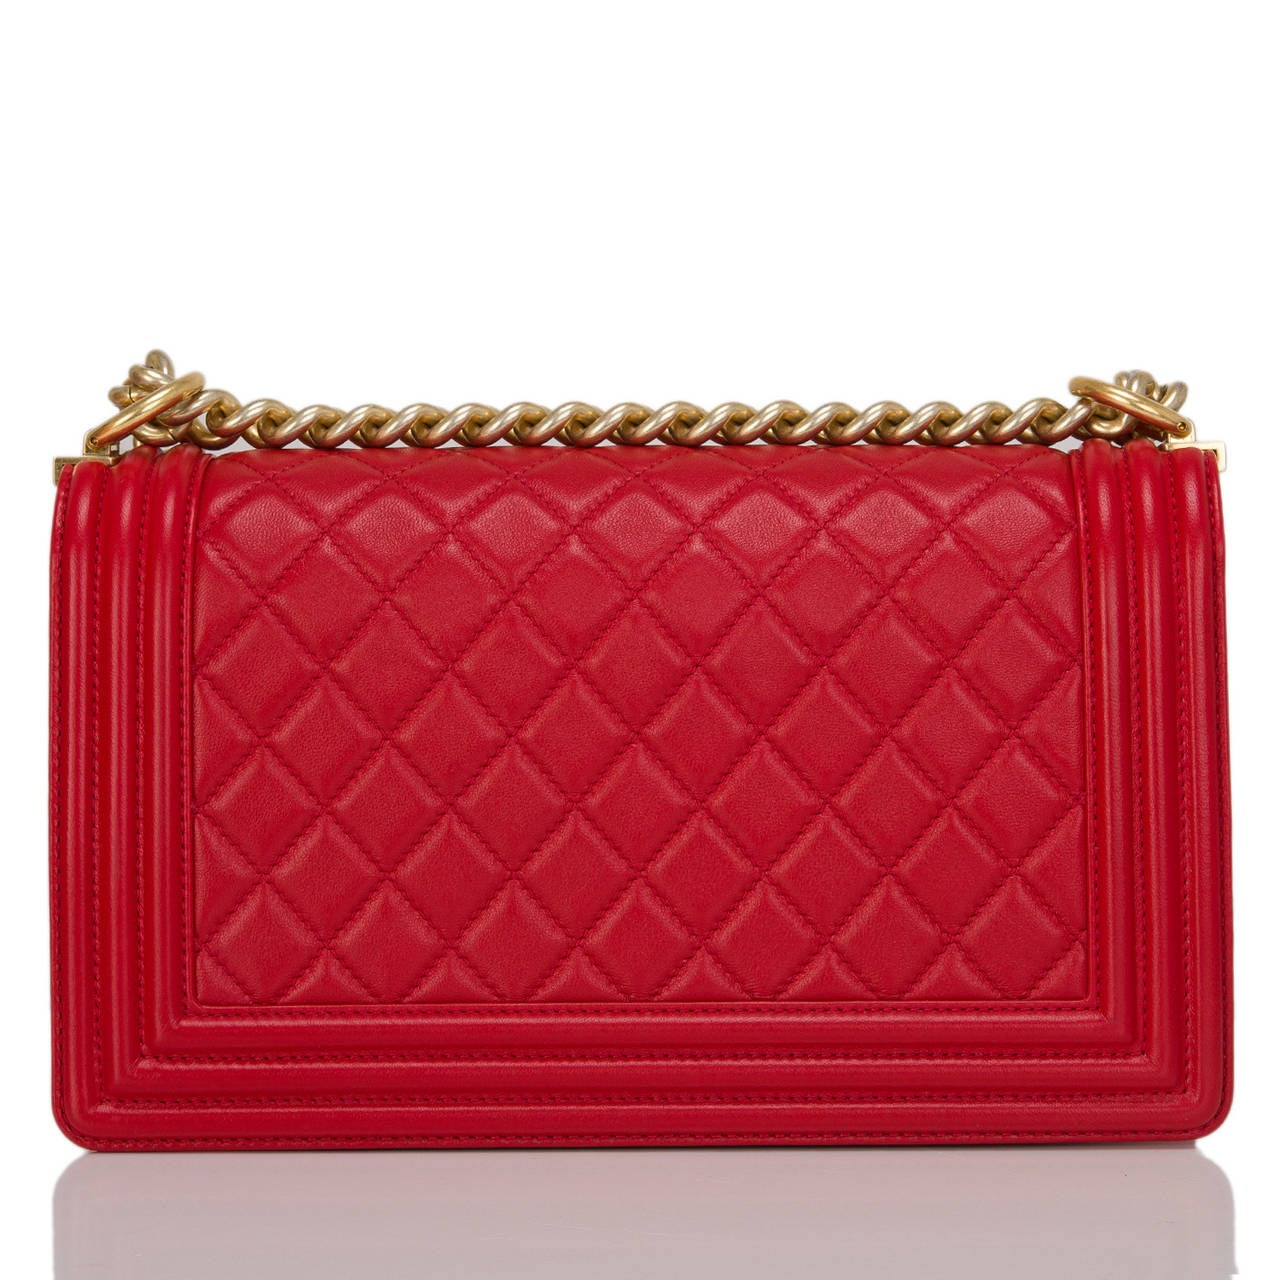 Chanel Red Quilted Lambskin Medium Boy Bag In New never worn Condition For Sale In New York, NY